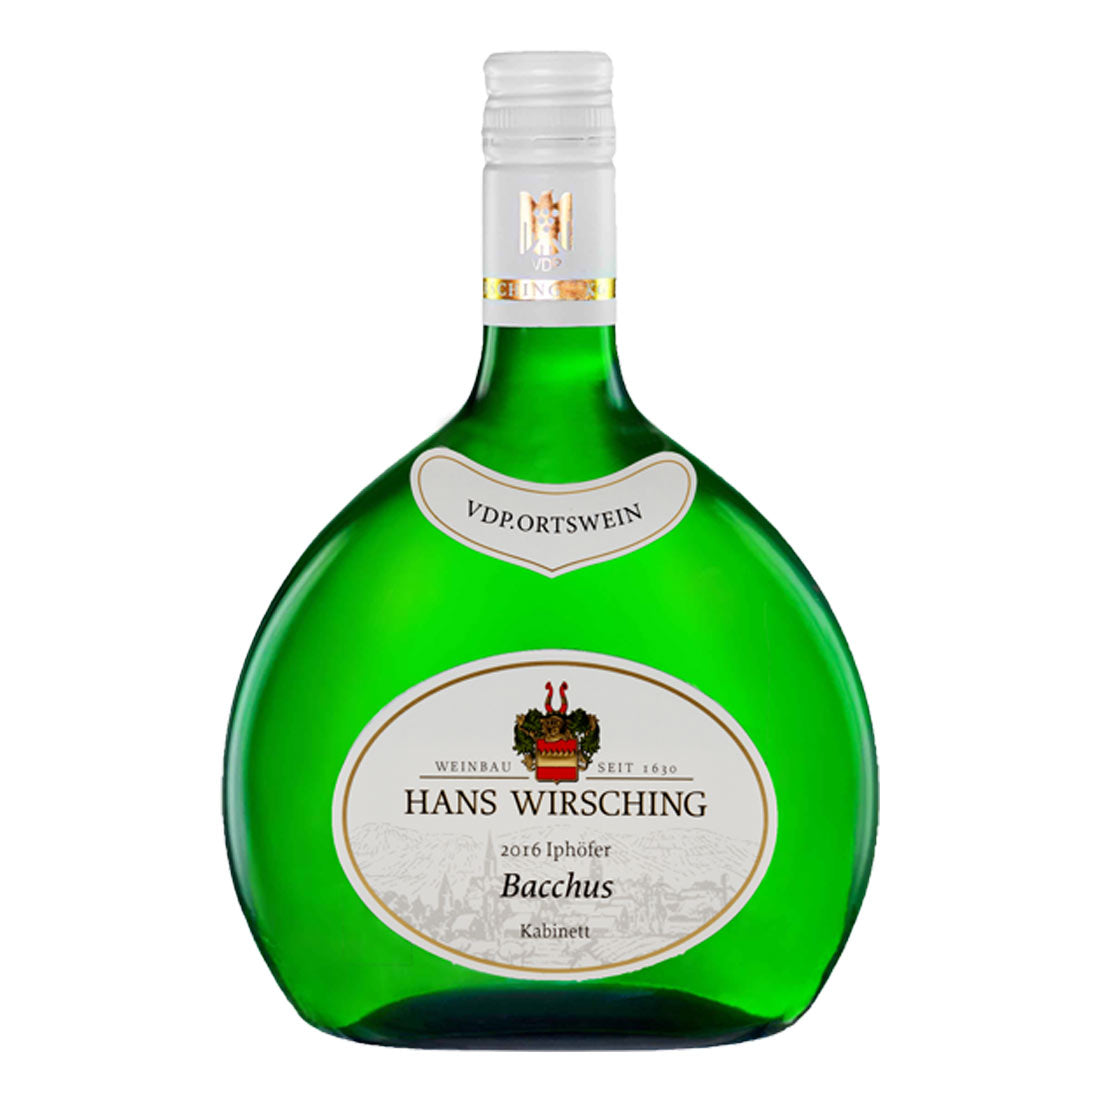 Hans Wirsching Muller Thurgau 2013 - 750ml Wine - Drinkka Alcohol Delivery Best Whiskey Wine Gin Beer Vodkas and more for Parties in Makati BGC Fort and Manila | Bevtools Bar and Beverage Tools